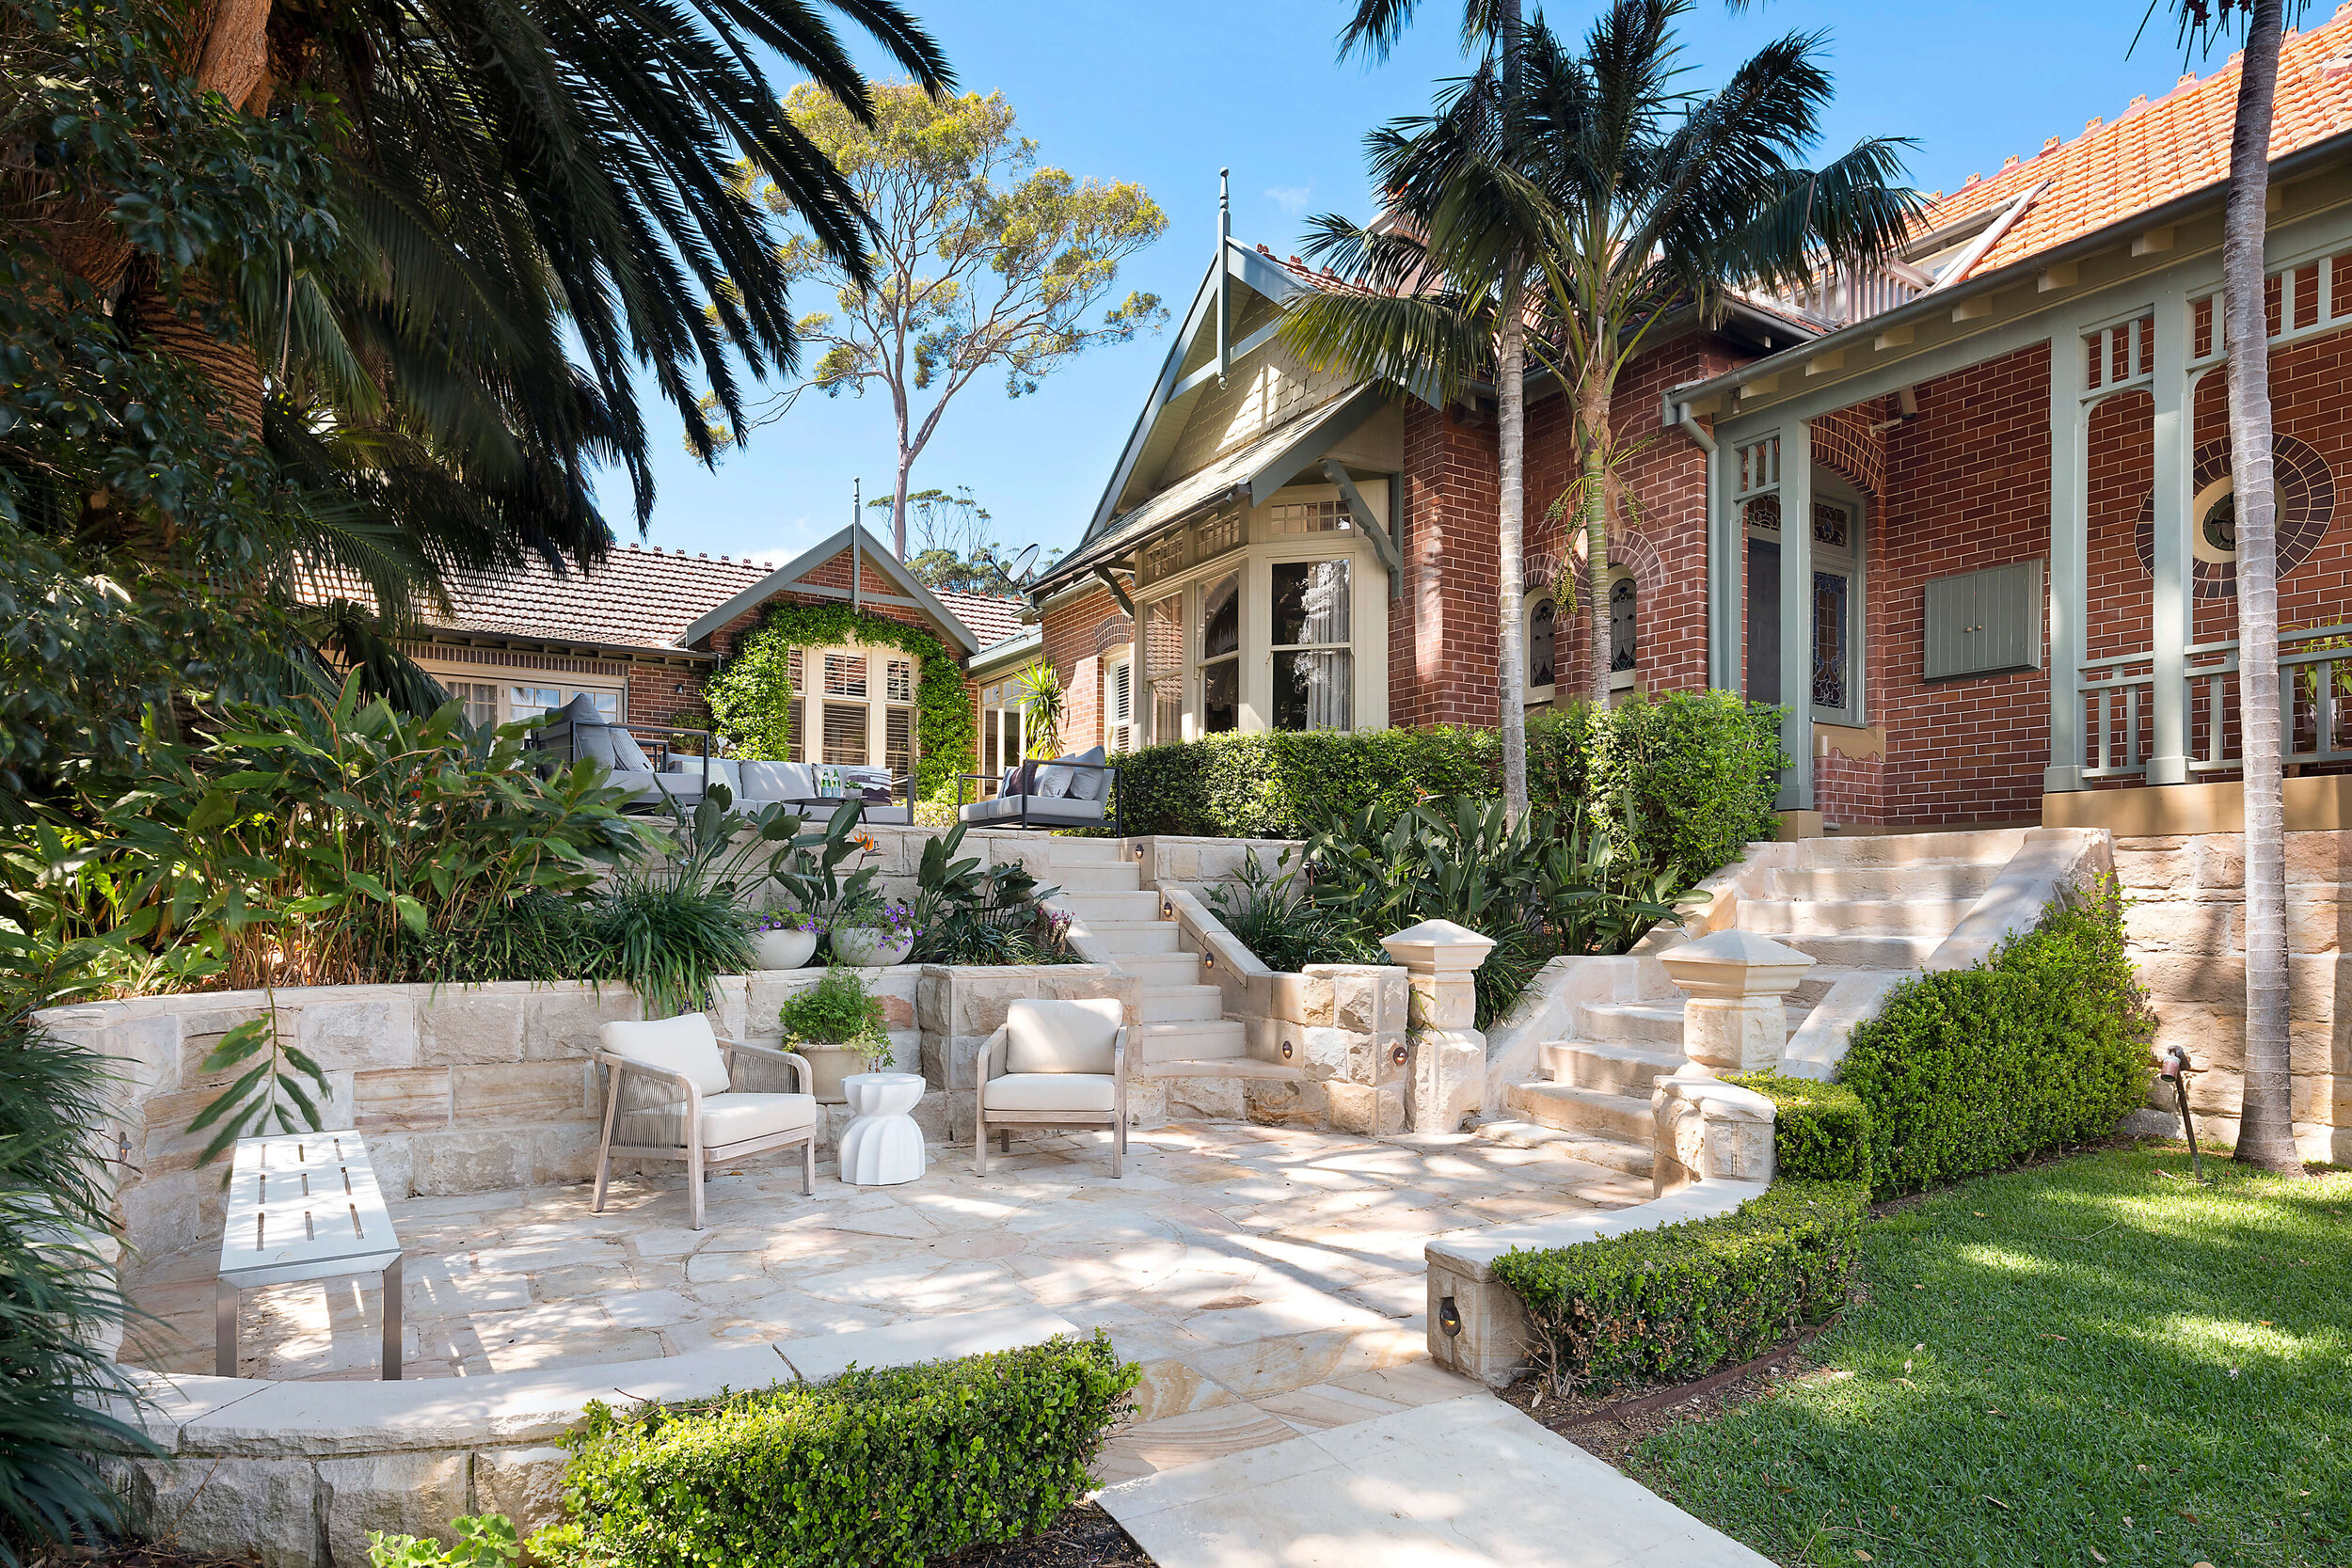 """LUXURY LIVING: This """"residence like no other"""" is 1260sqm of pure bliss, says Coombs."""